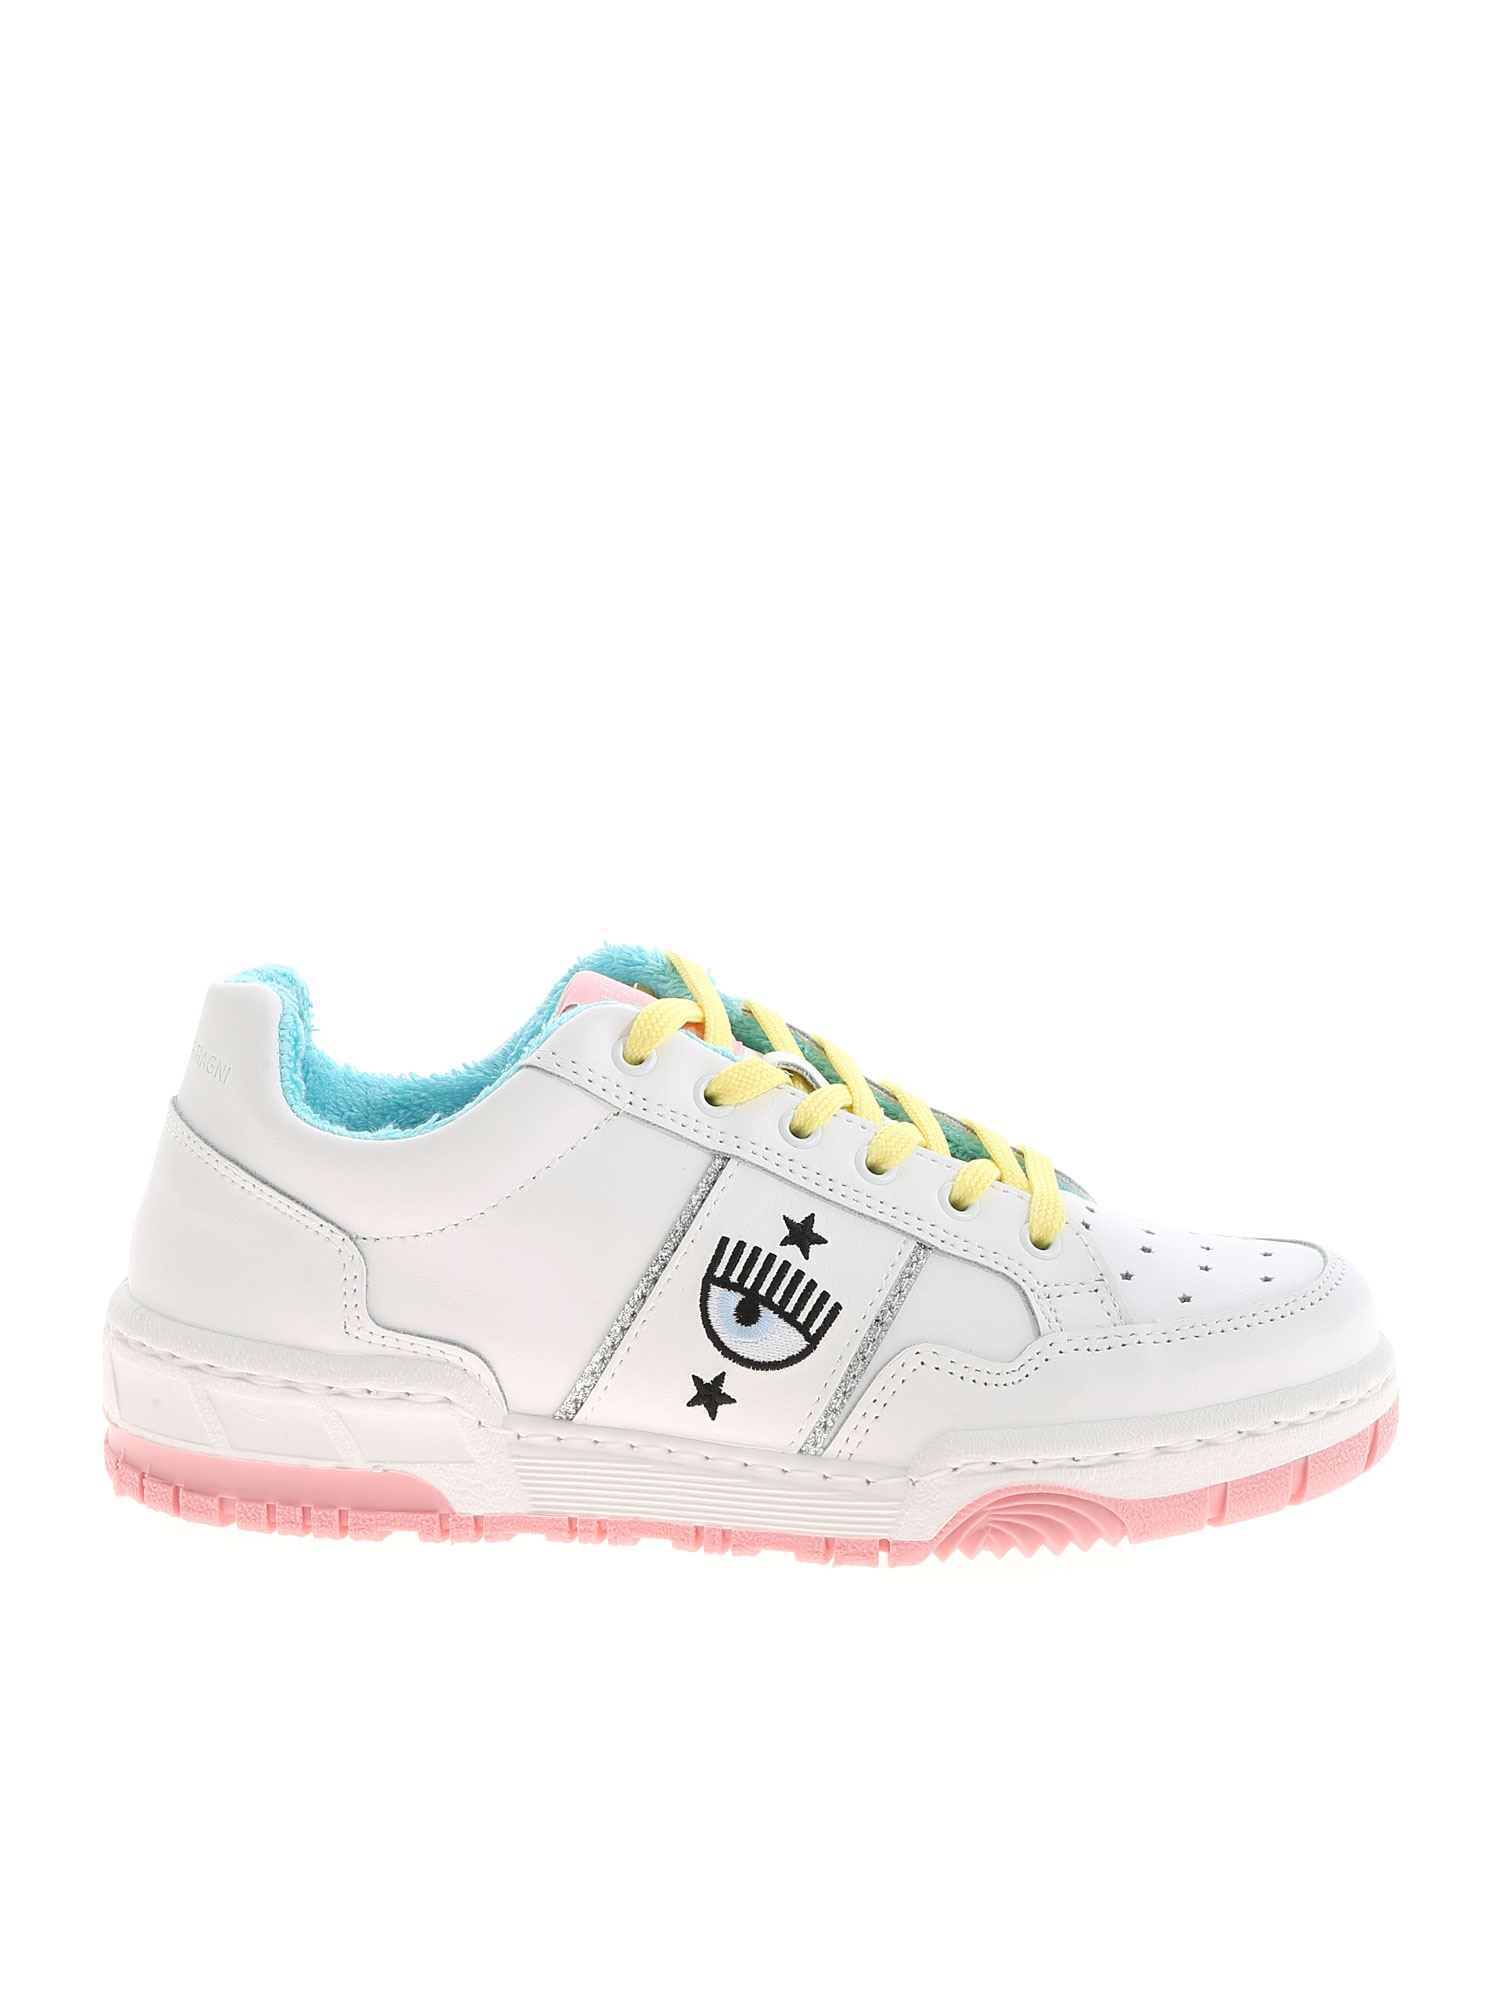 Chiara Ferragni Sneakers WHITE SNEAKERS WITH TERRY LINING